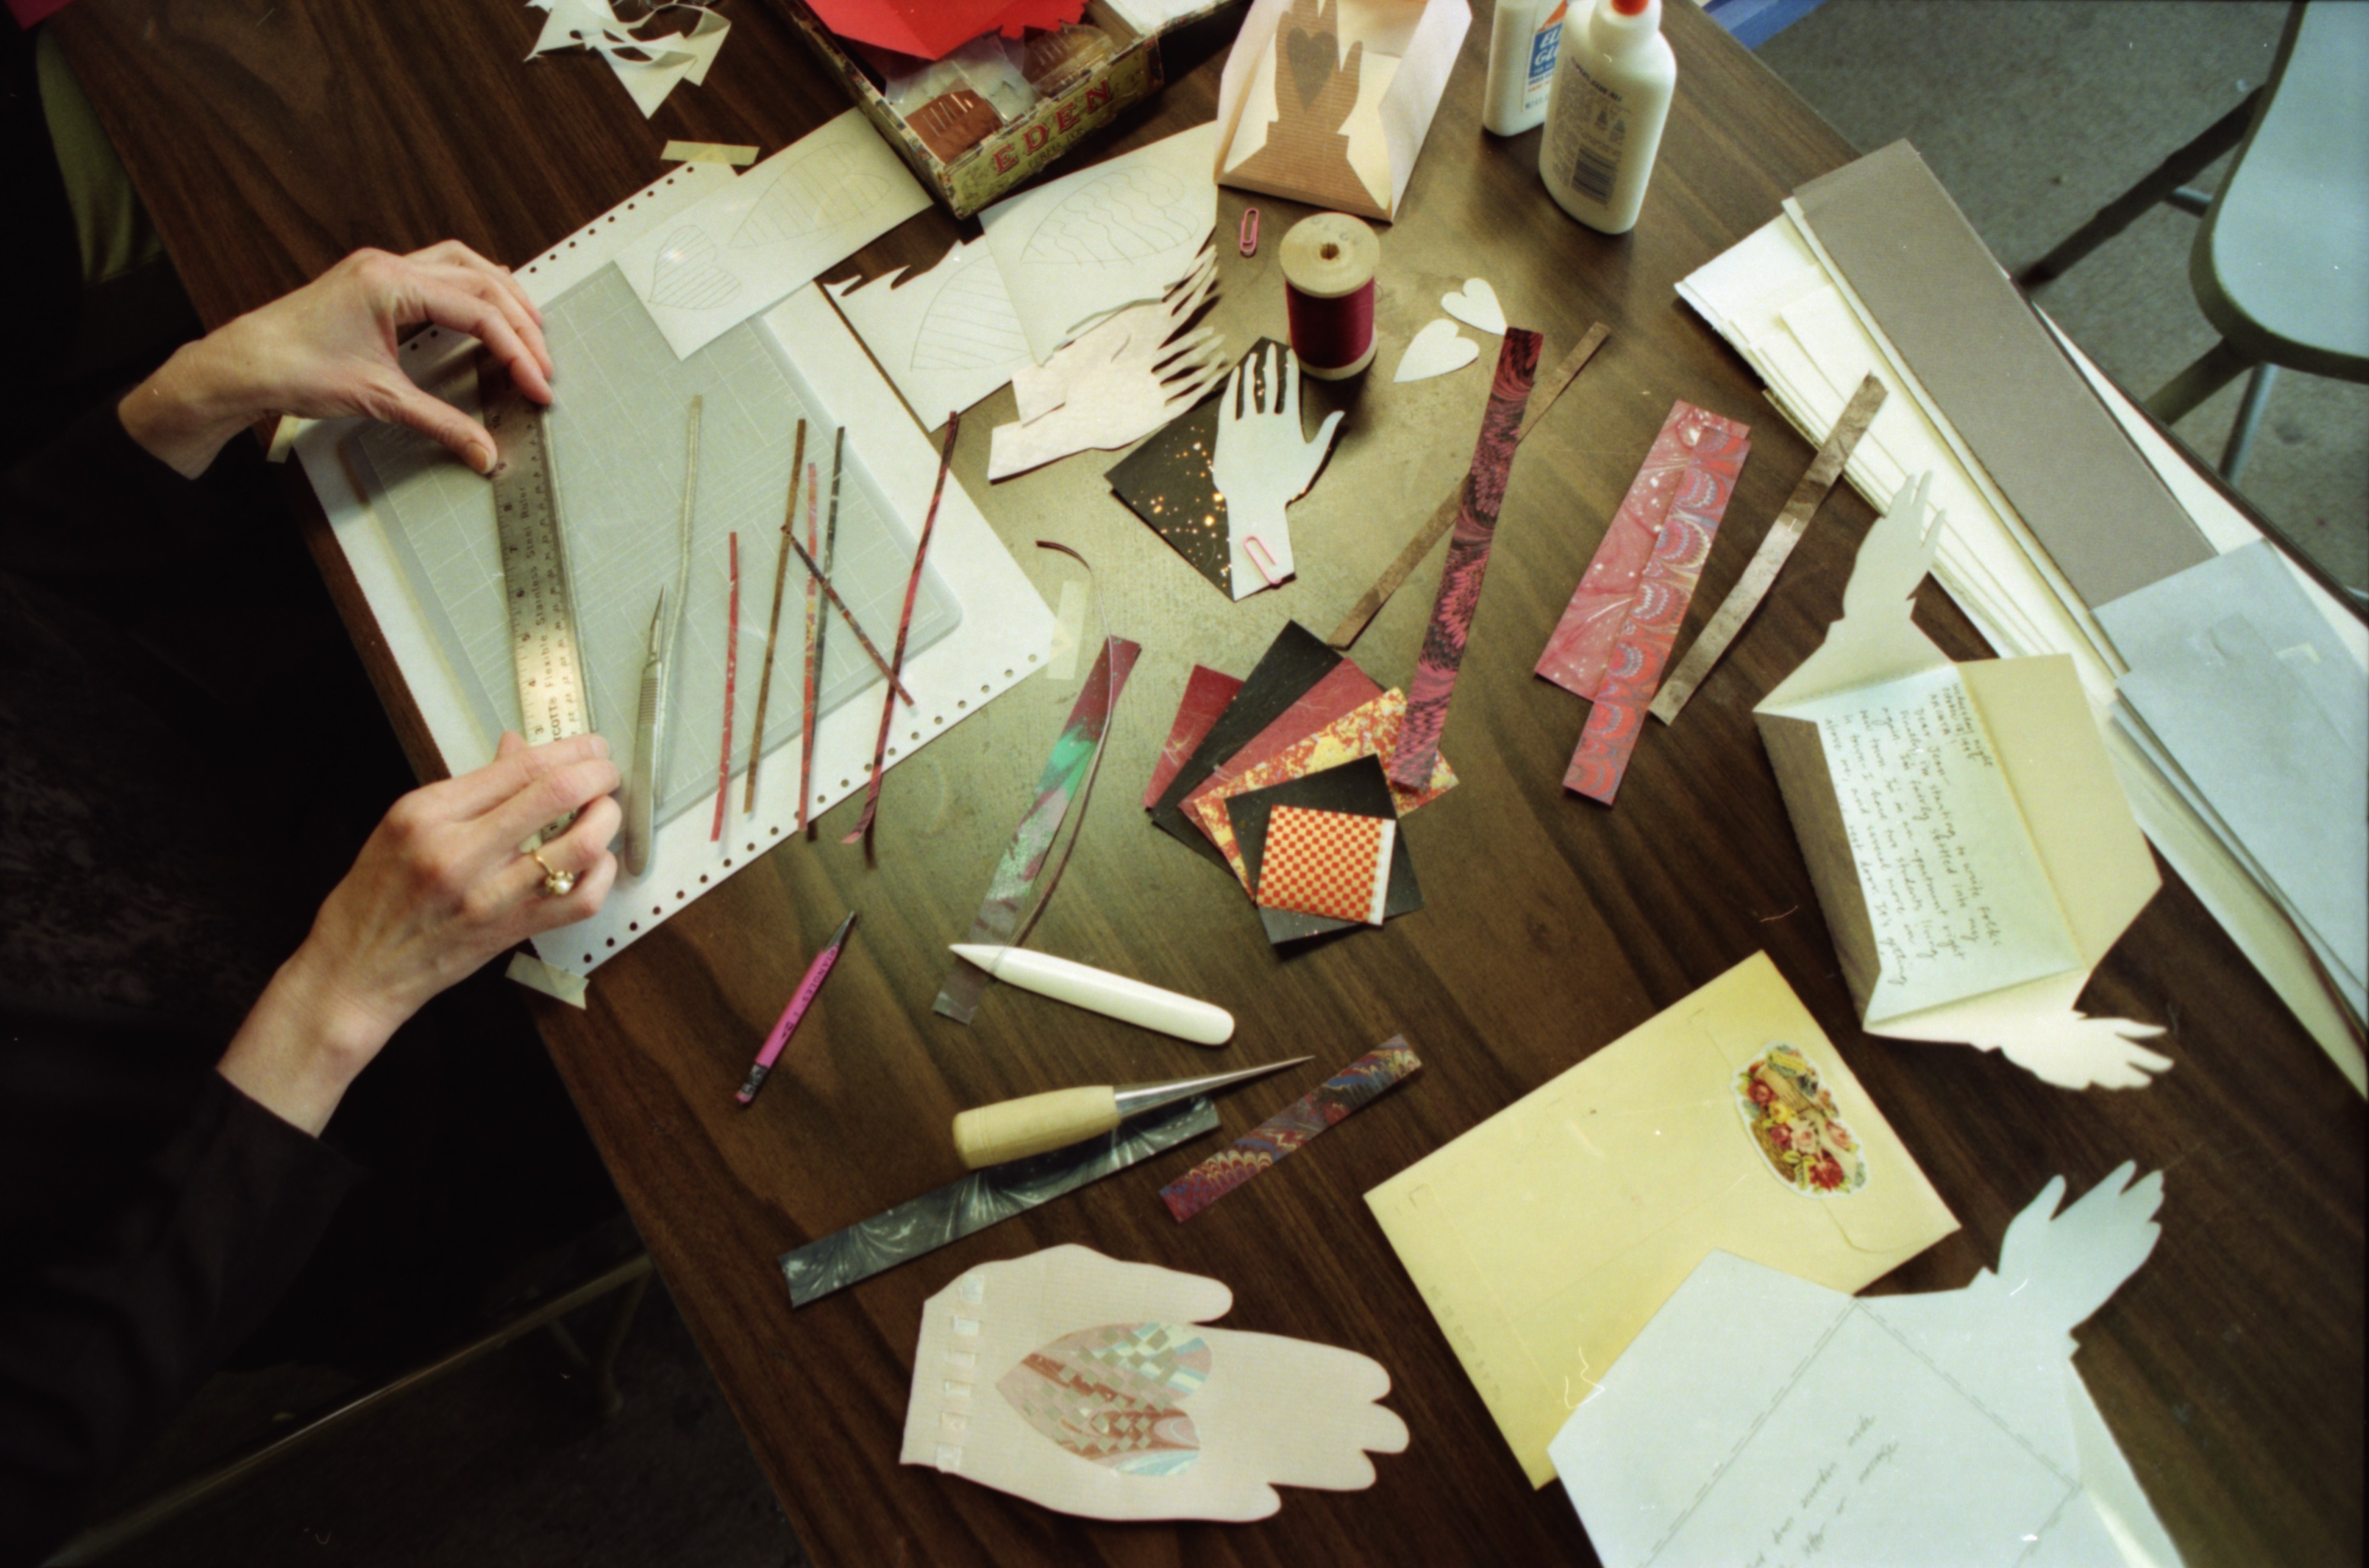 Jean Buescher Demonstrates at Valentine's Day Card Workshop at Hollander's, February 1996 image